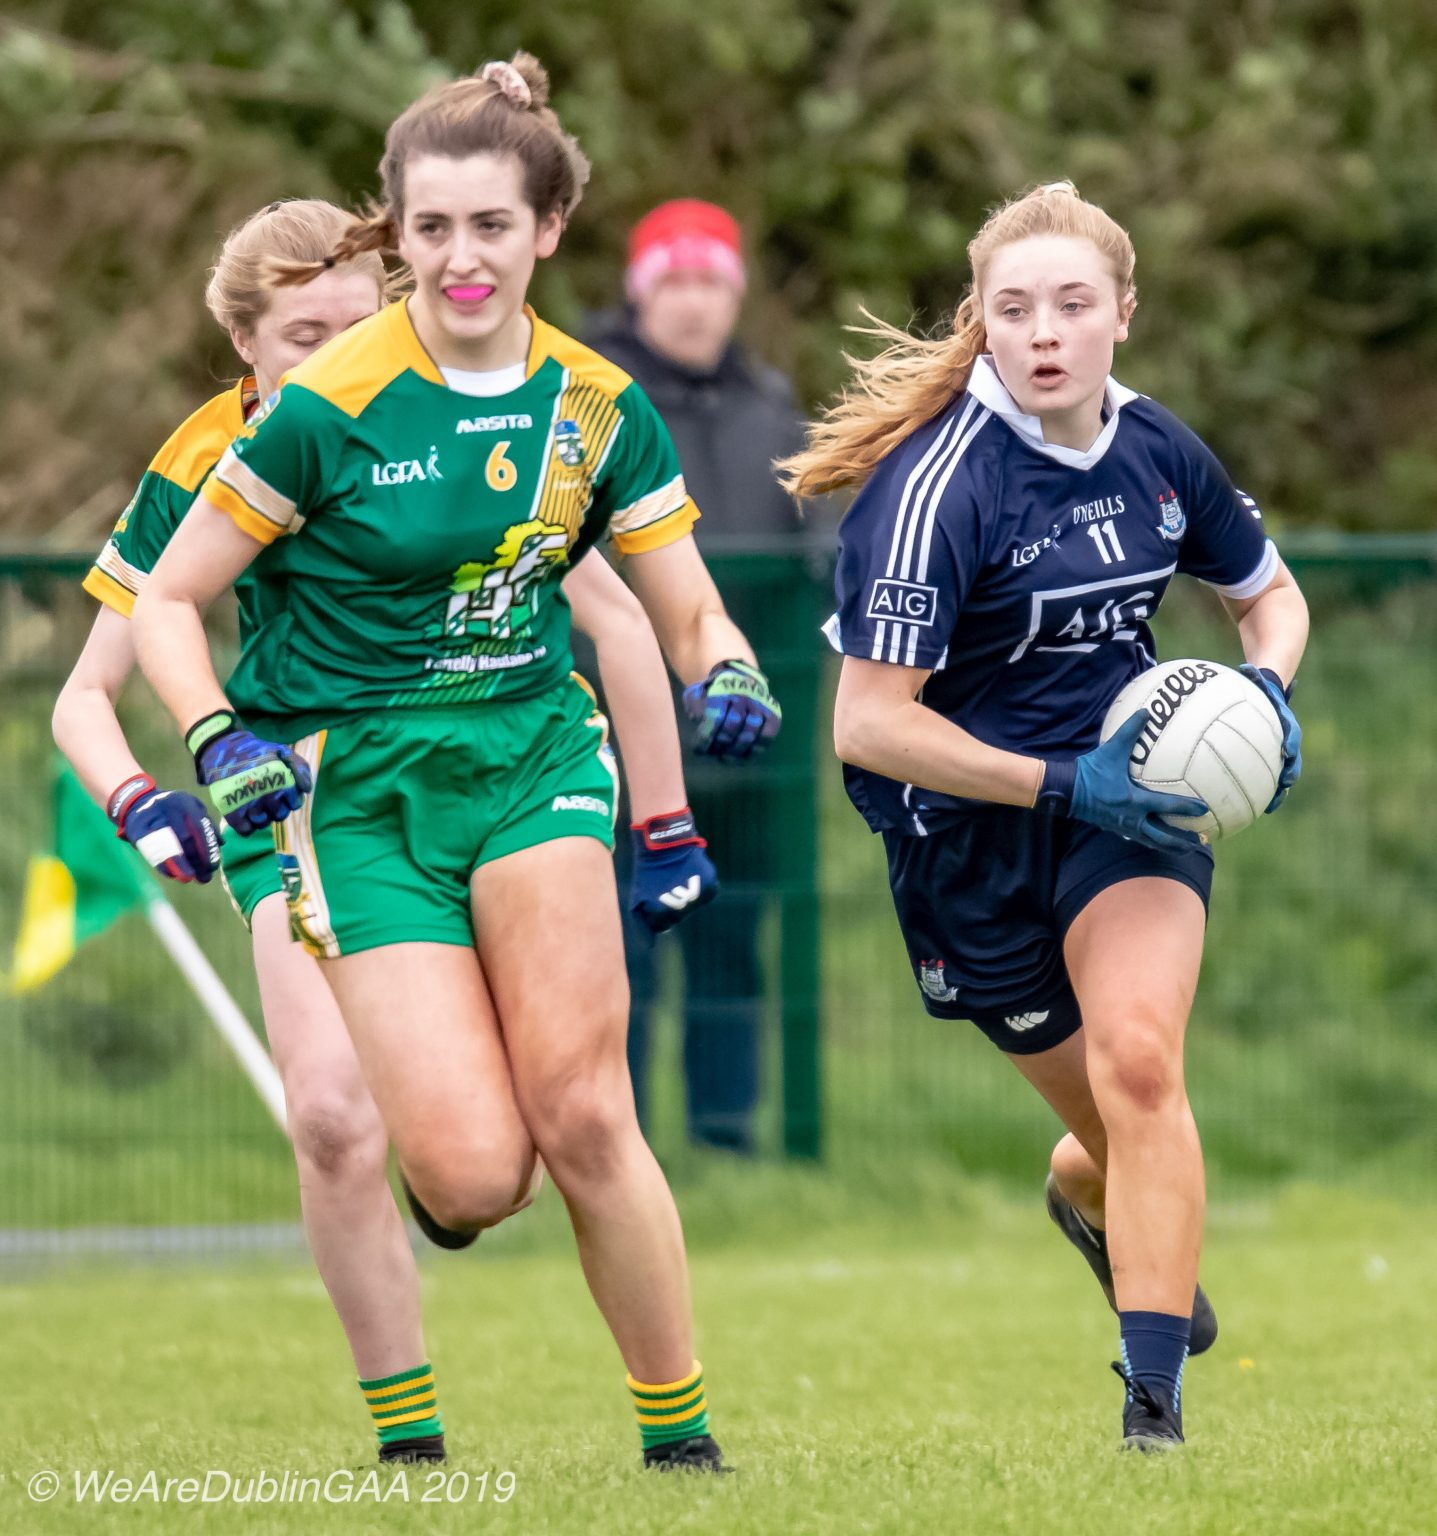 Dublin Ladies Footballer In a Navy Jersey and navy shorts raced away from two Meath players in green jersey with yellow stripes across the front and green shorts, Meath won the game to claim the Leinster U16 Championship title